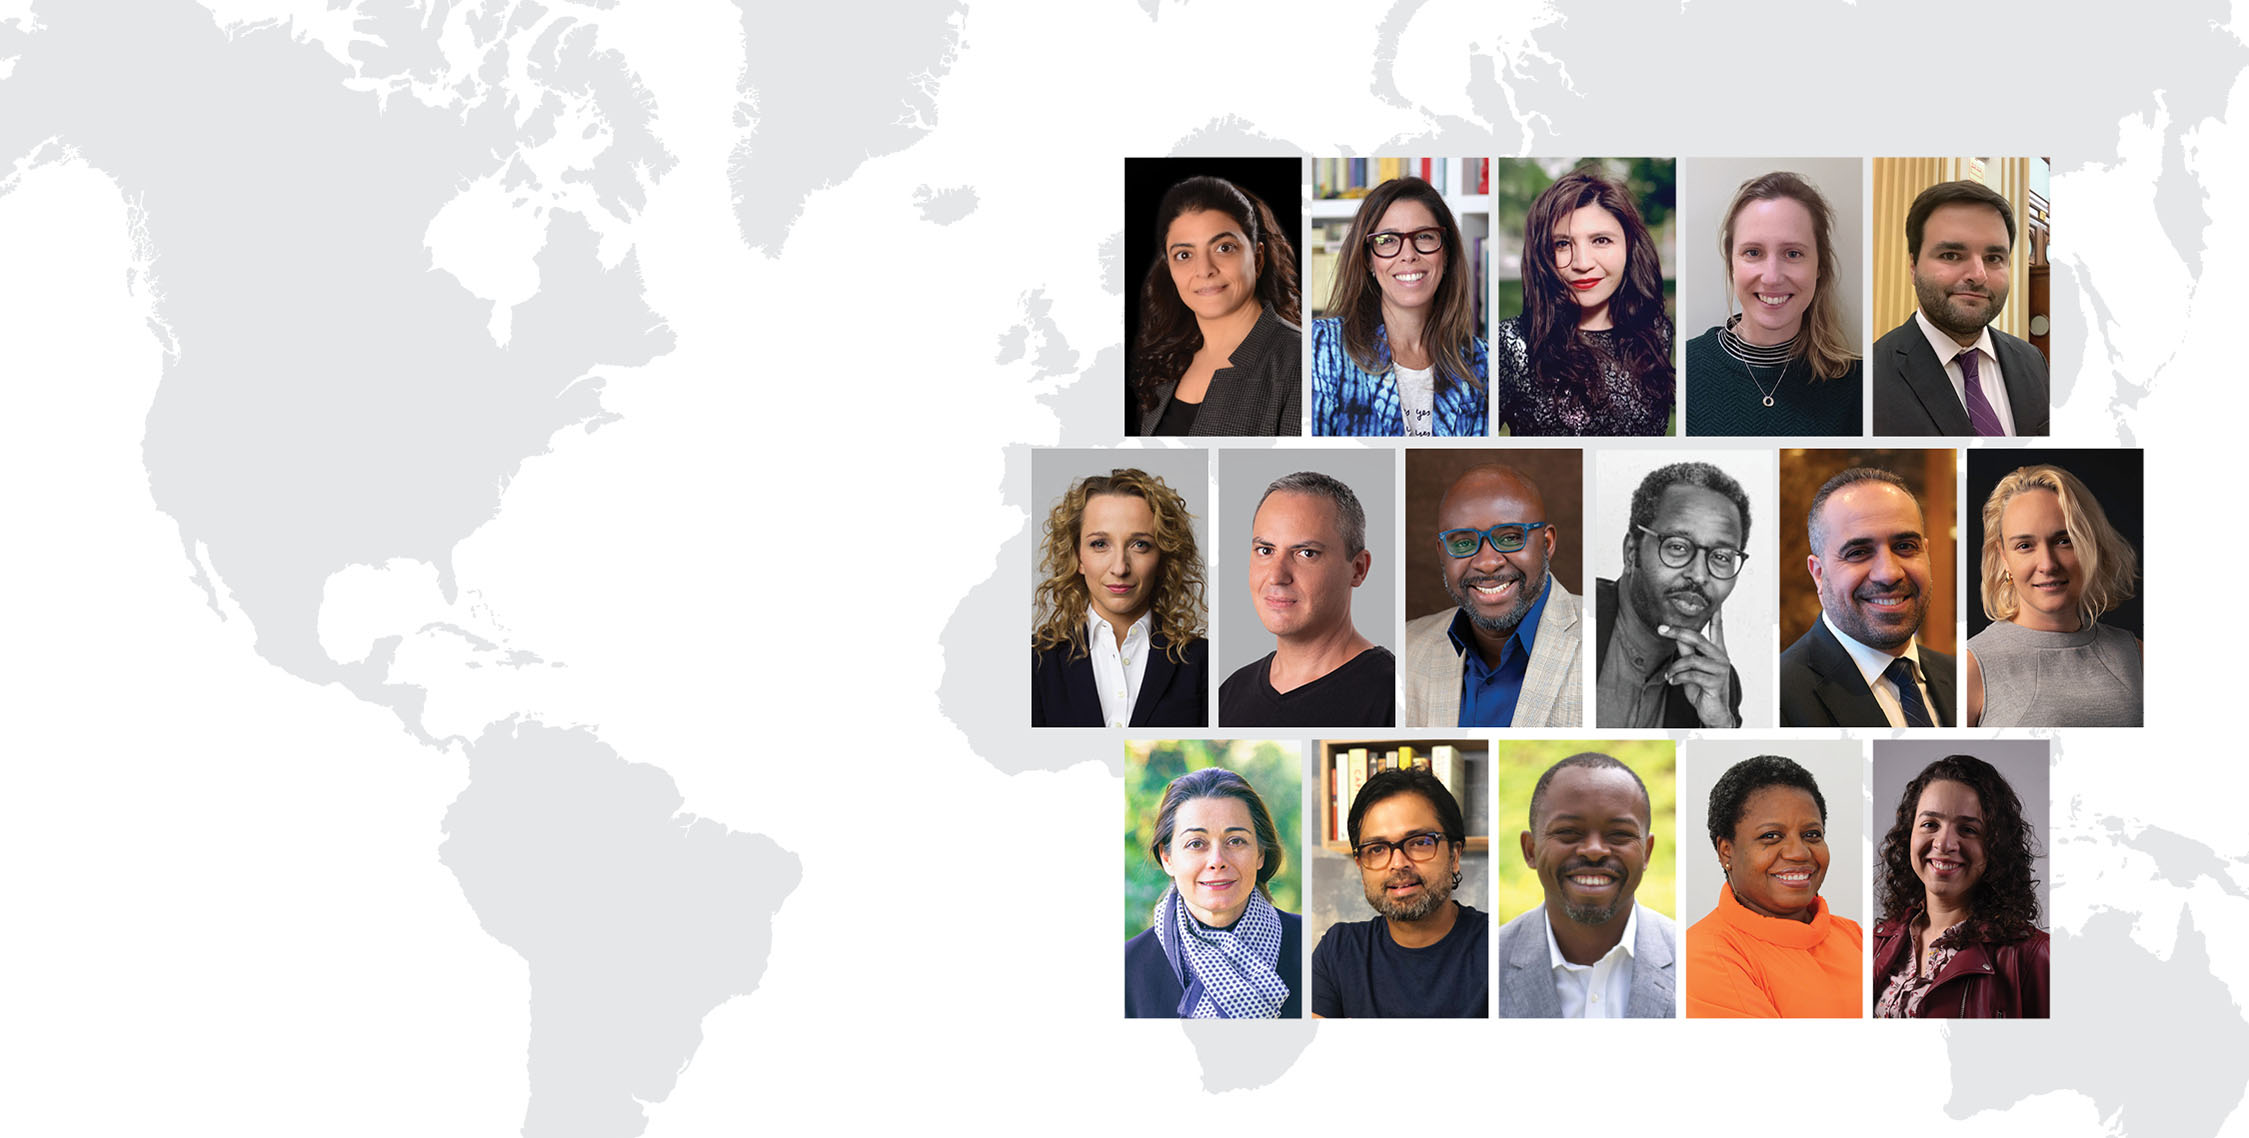 The 2021 World Fellows